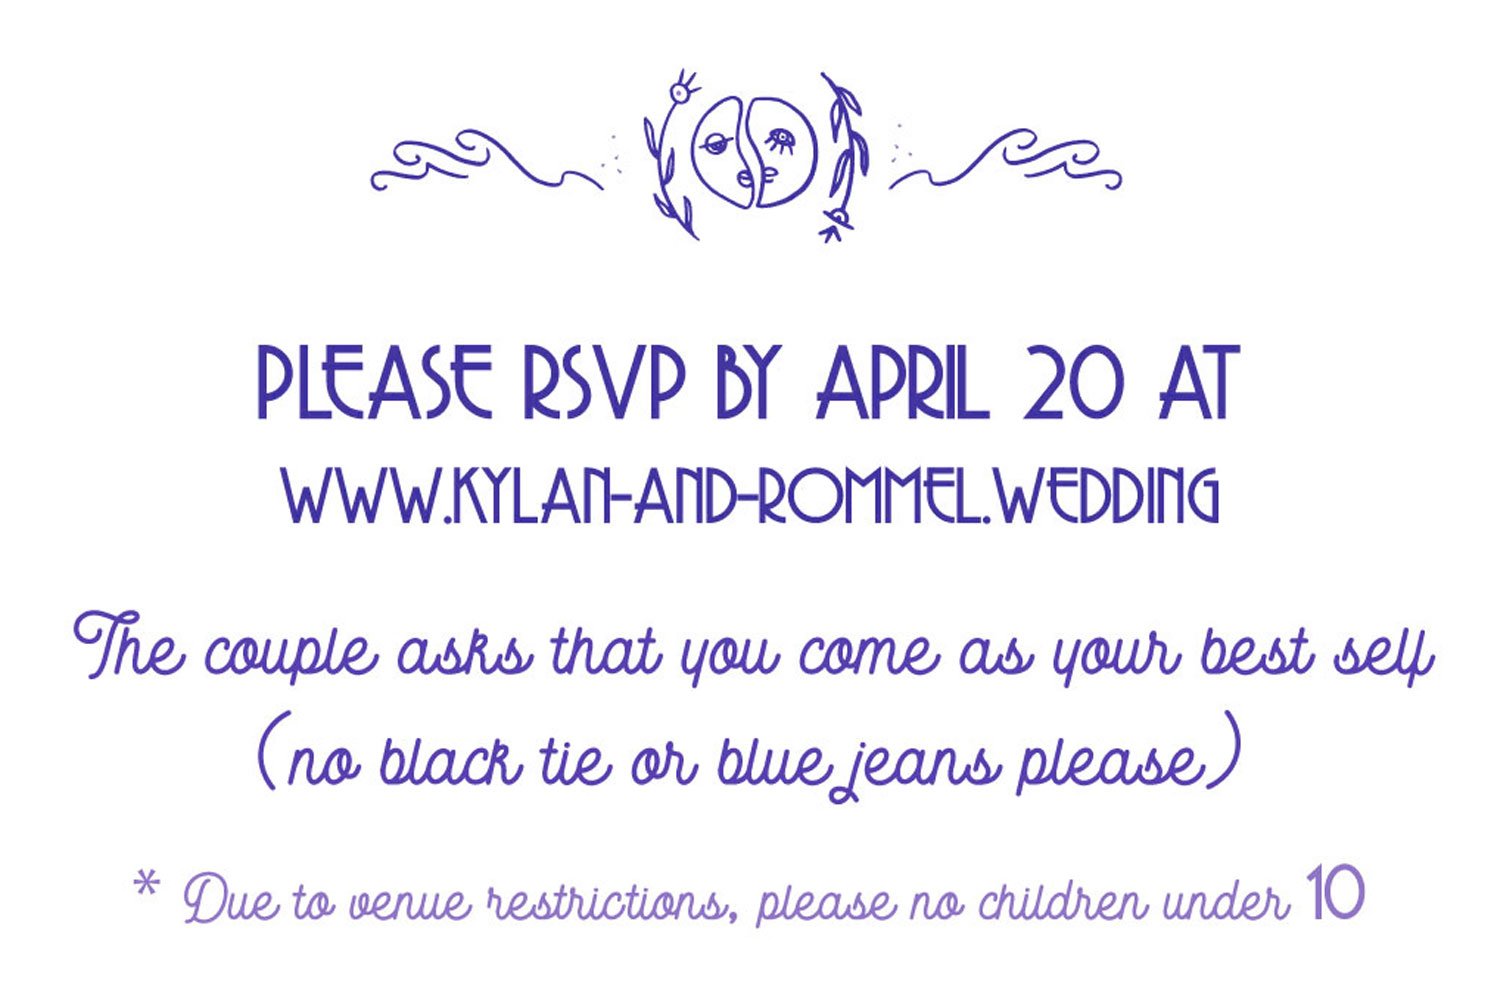 Hedwig_illustrated_custom_invitations_gay_wedding_Erin_Ellis_detail4.jpg